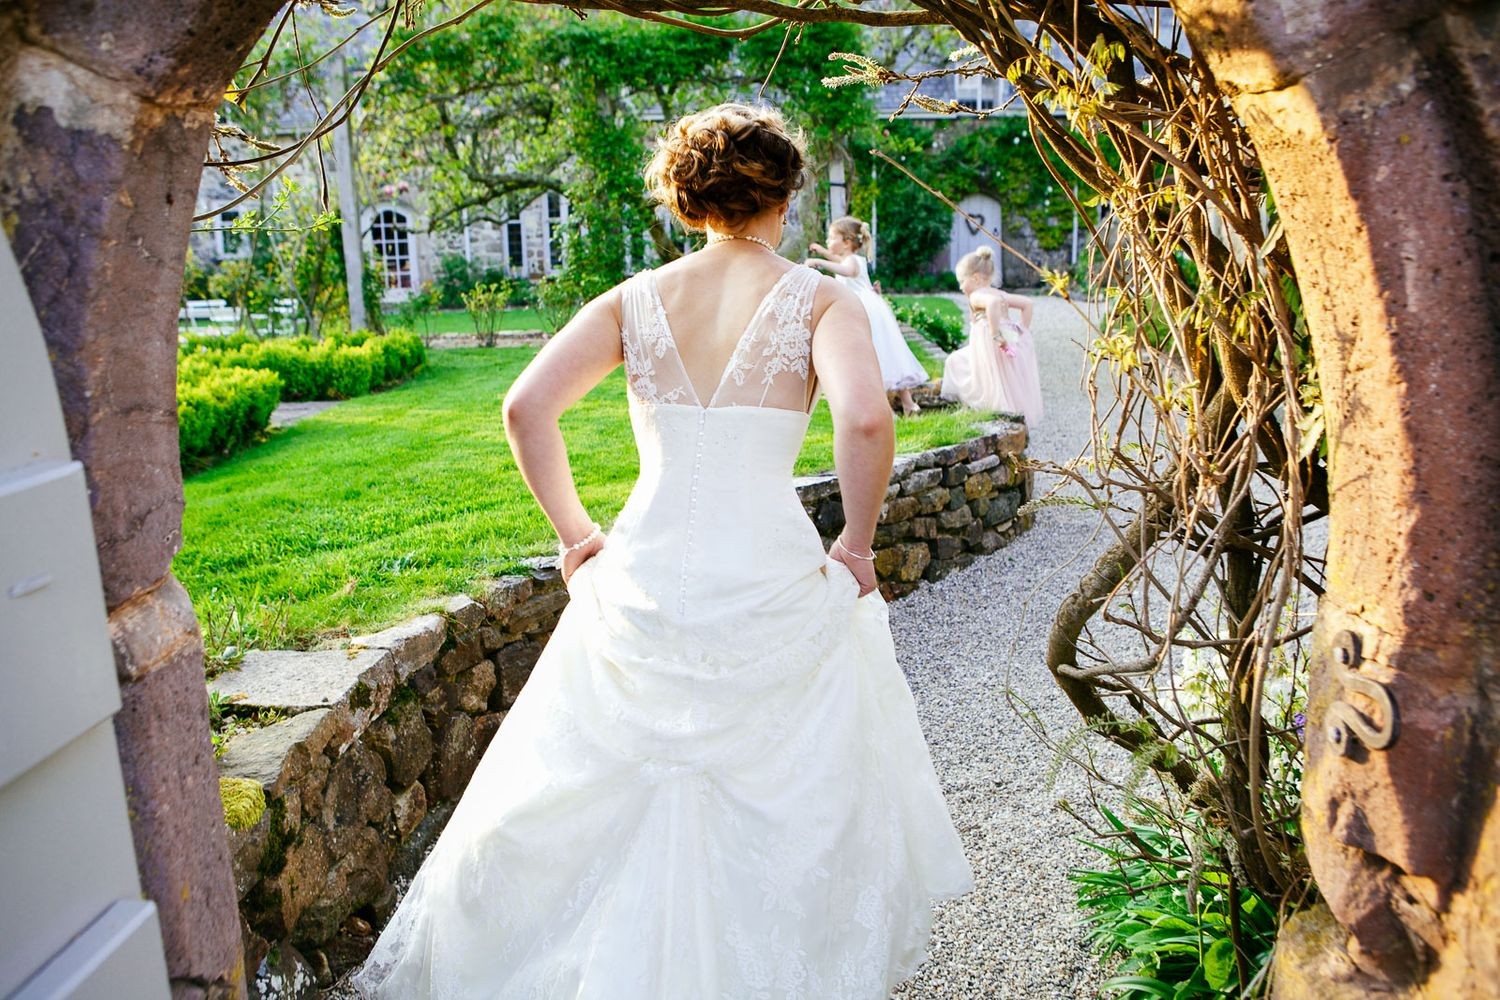 creative and natural wedding photography at the Great Barn near Exeter Devon